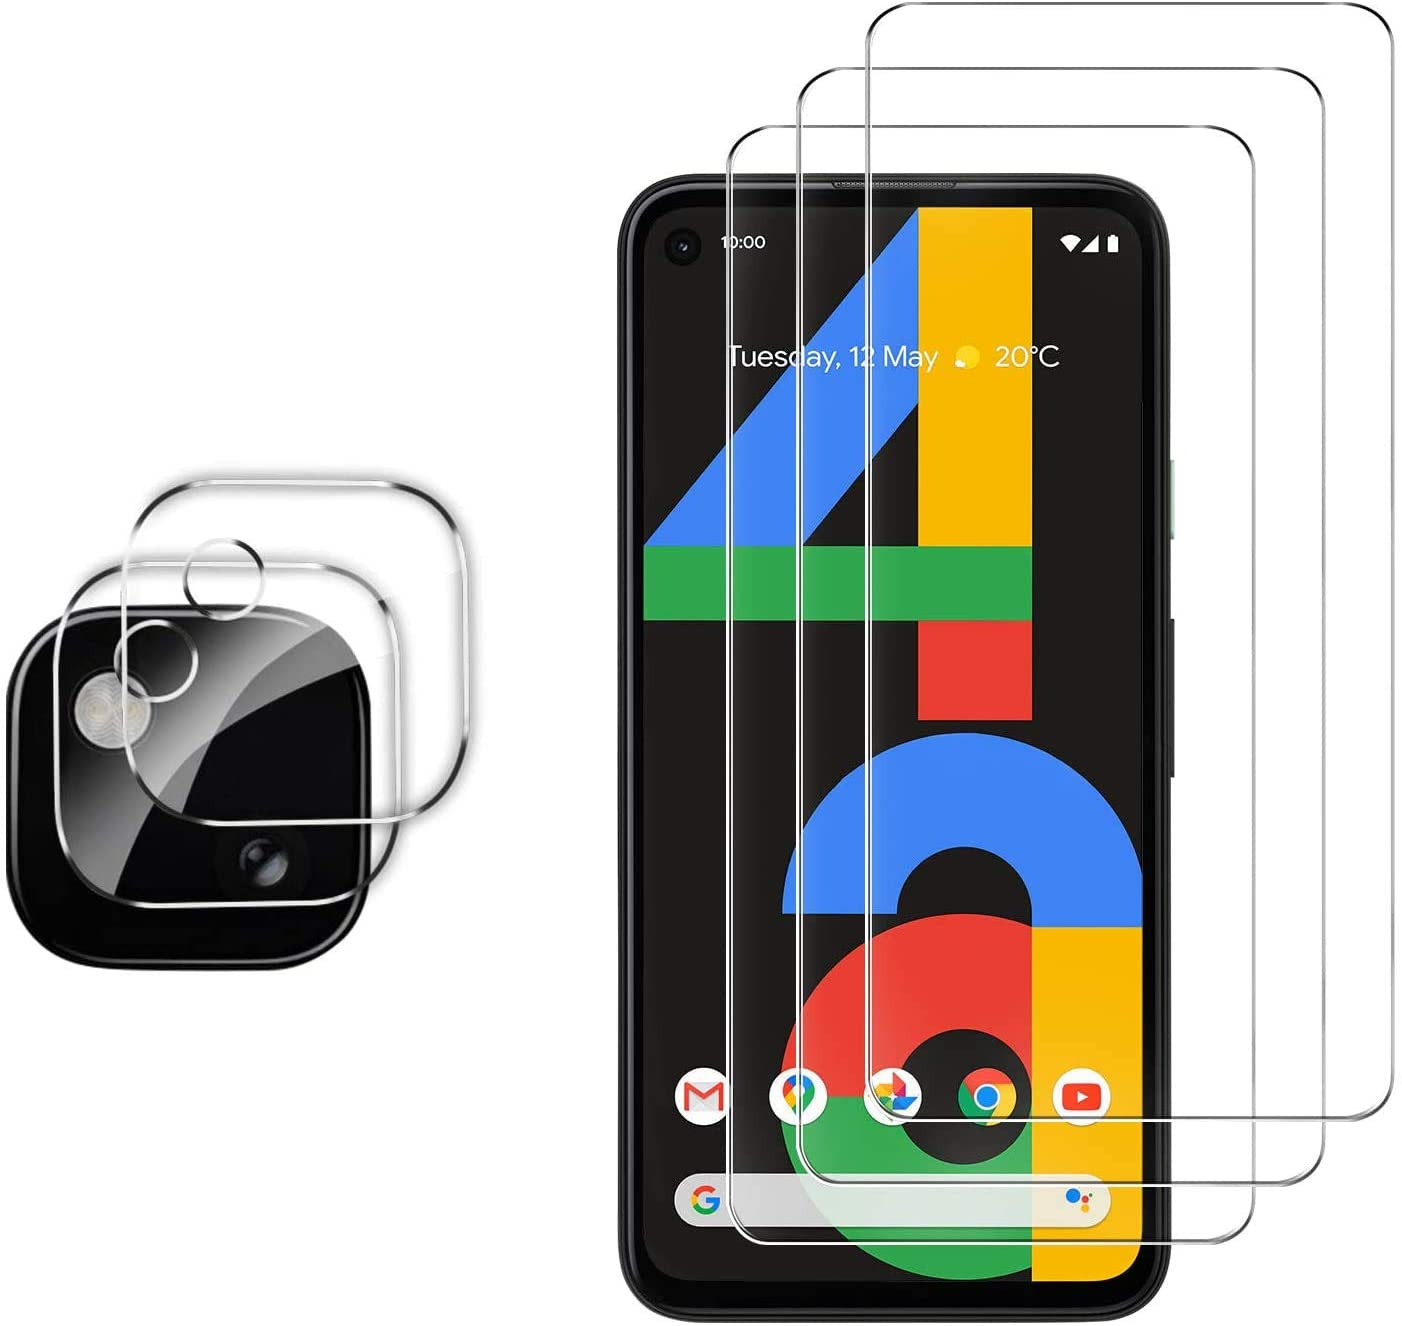 Gesma Tempered Glass Pixel 4a Screen Protector Front And Back Pack